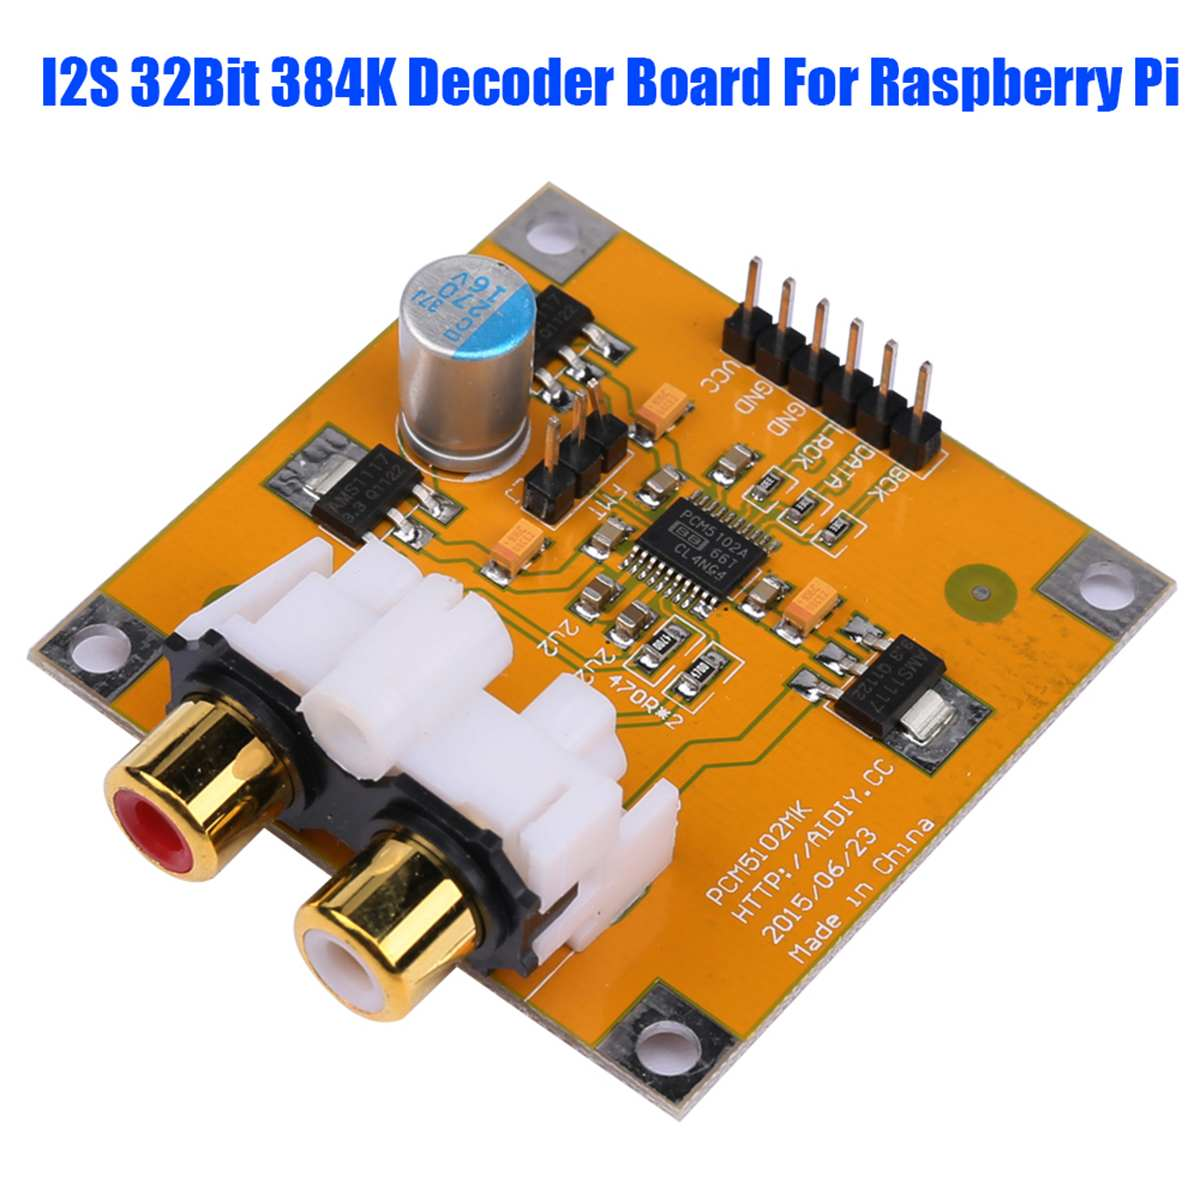 Accessories & Parts Dac Cliate 1pc Dac Decoder Board M5102/pcm5102a I2s 32bit 384k For Raspberry Pi Red Core Player